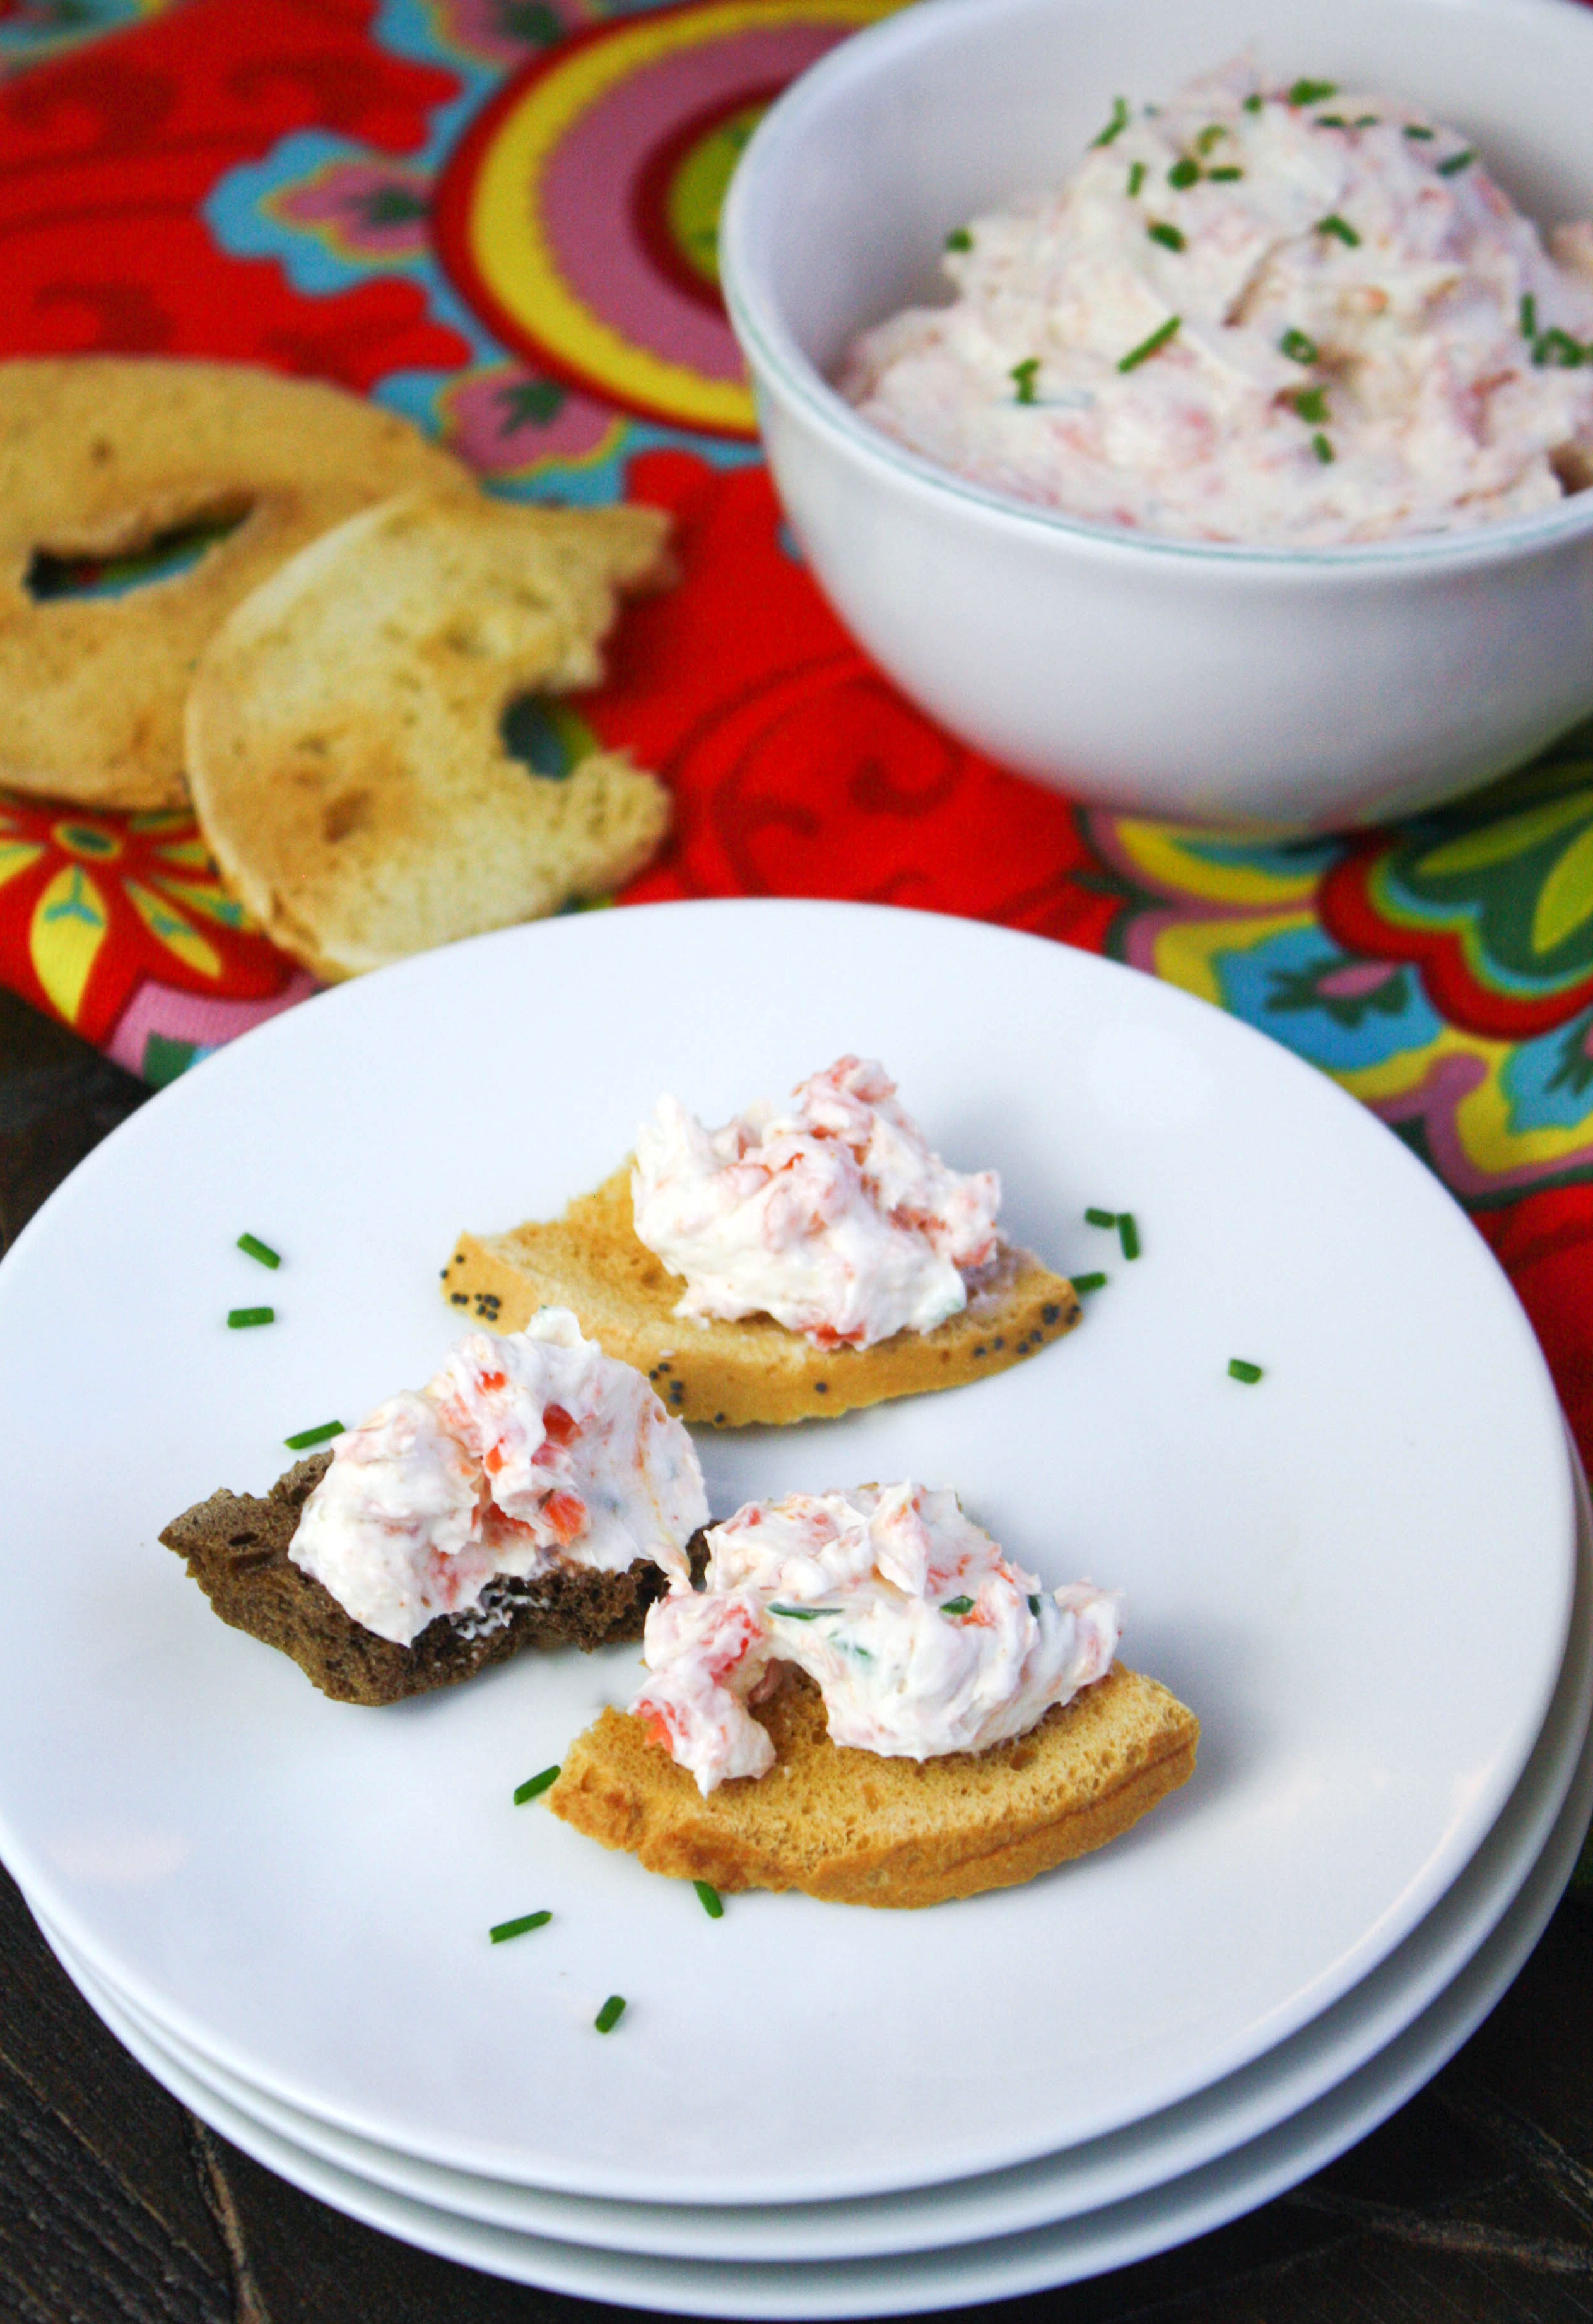 Simple Smoked Salmon Spread is an easy appetizer you'll love to serve! This salmon spread is a real treat for any get together.